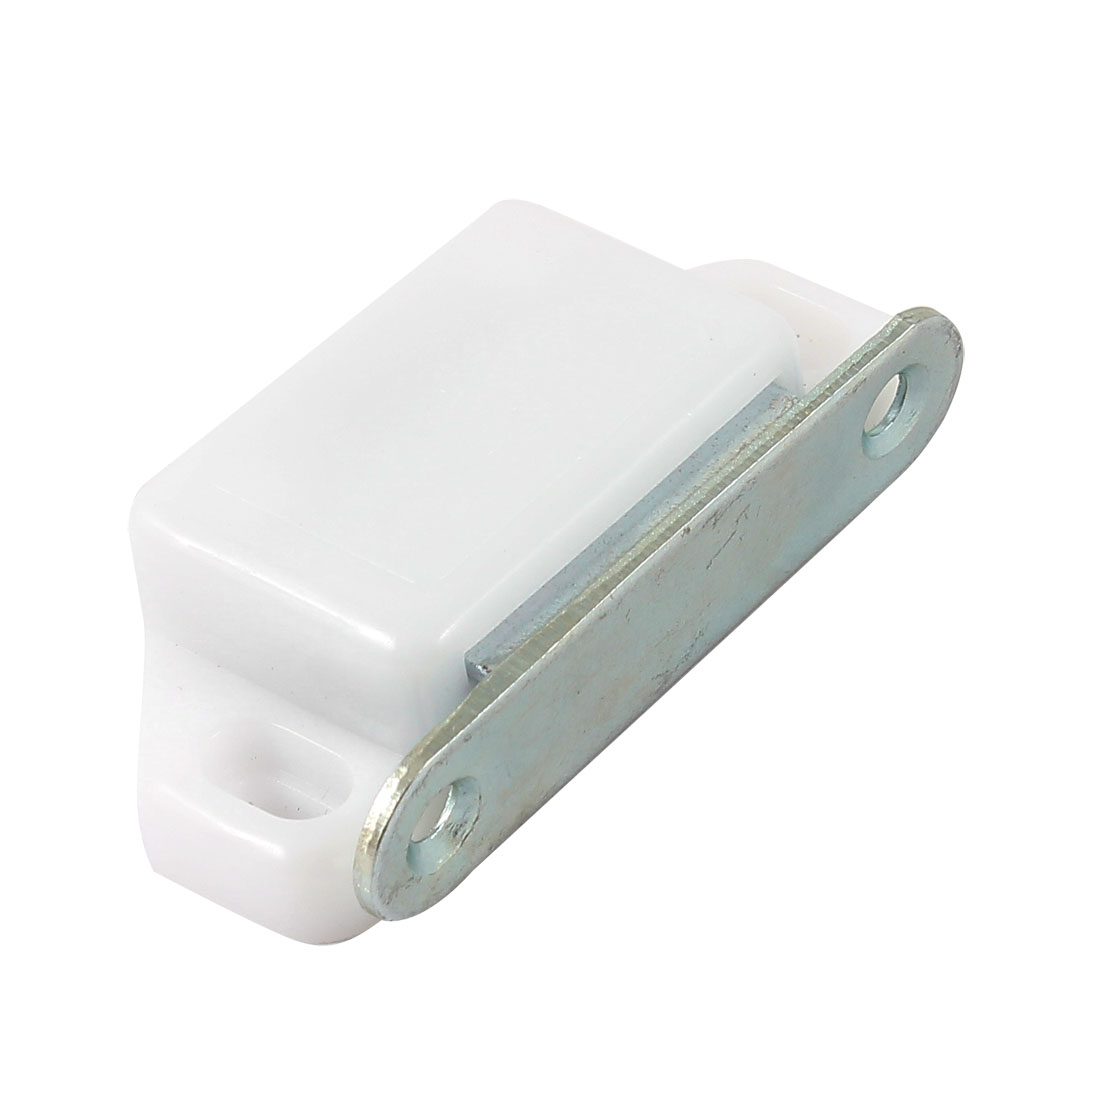 5.8cm Long Home Furniture Cabinet Glass Door Magnetic Catch Latch White